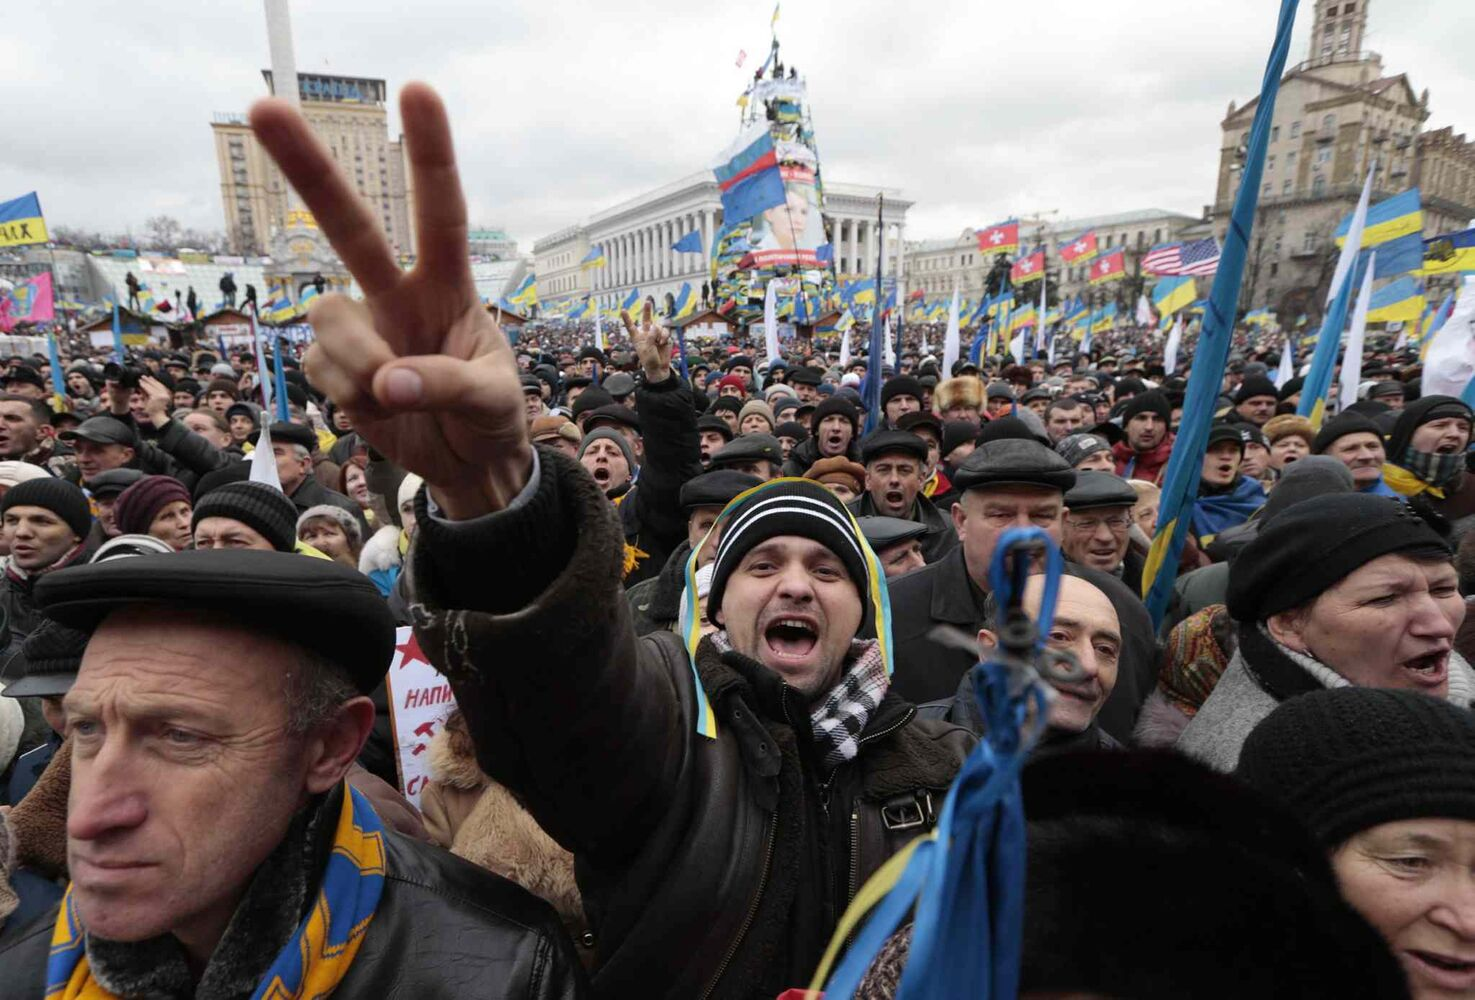 Pro-European Union activists shout slogans during a rally in the Independence Square in Kyiv Sunday.   (The Associated Press)